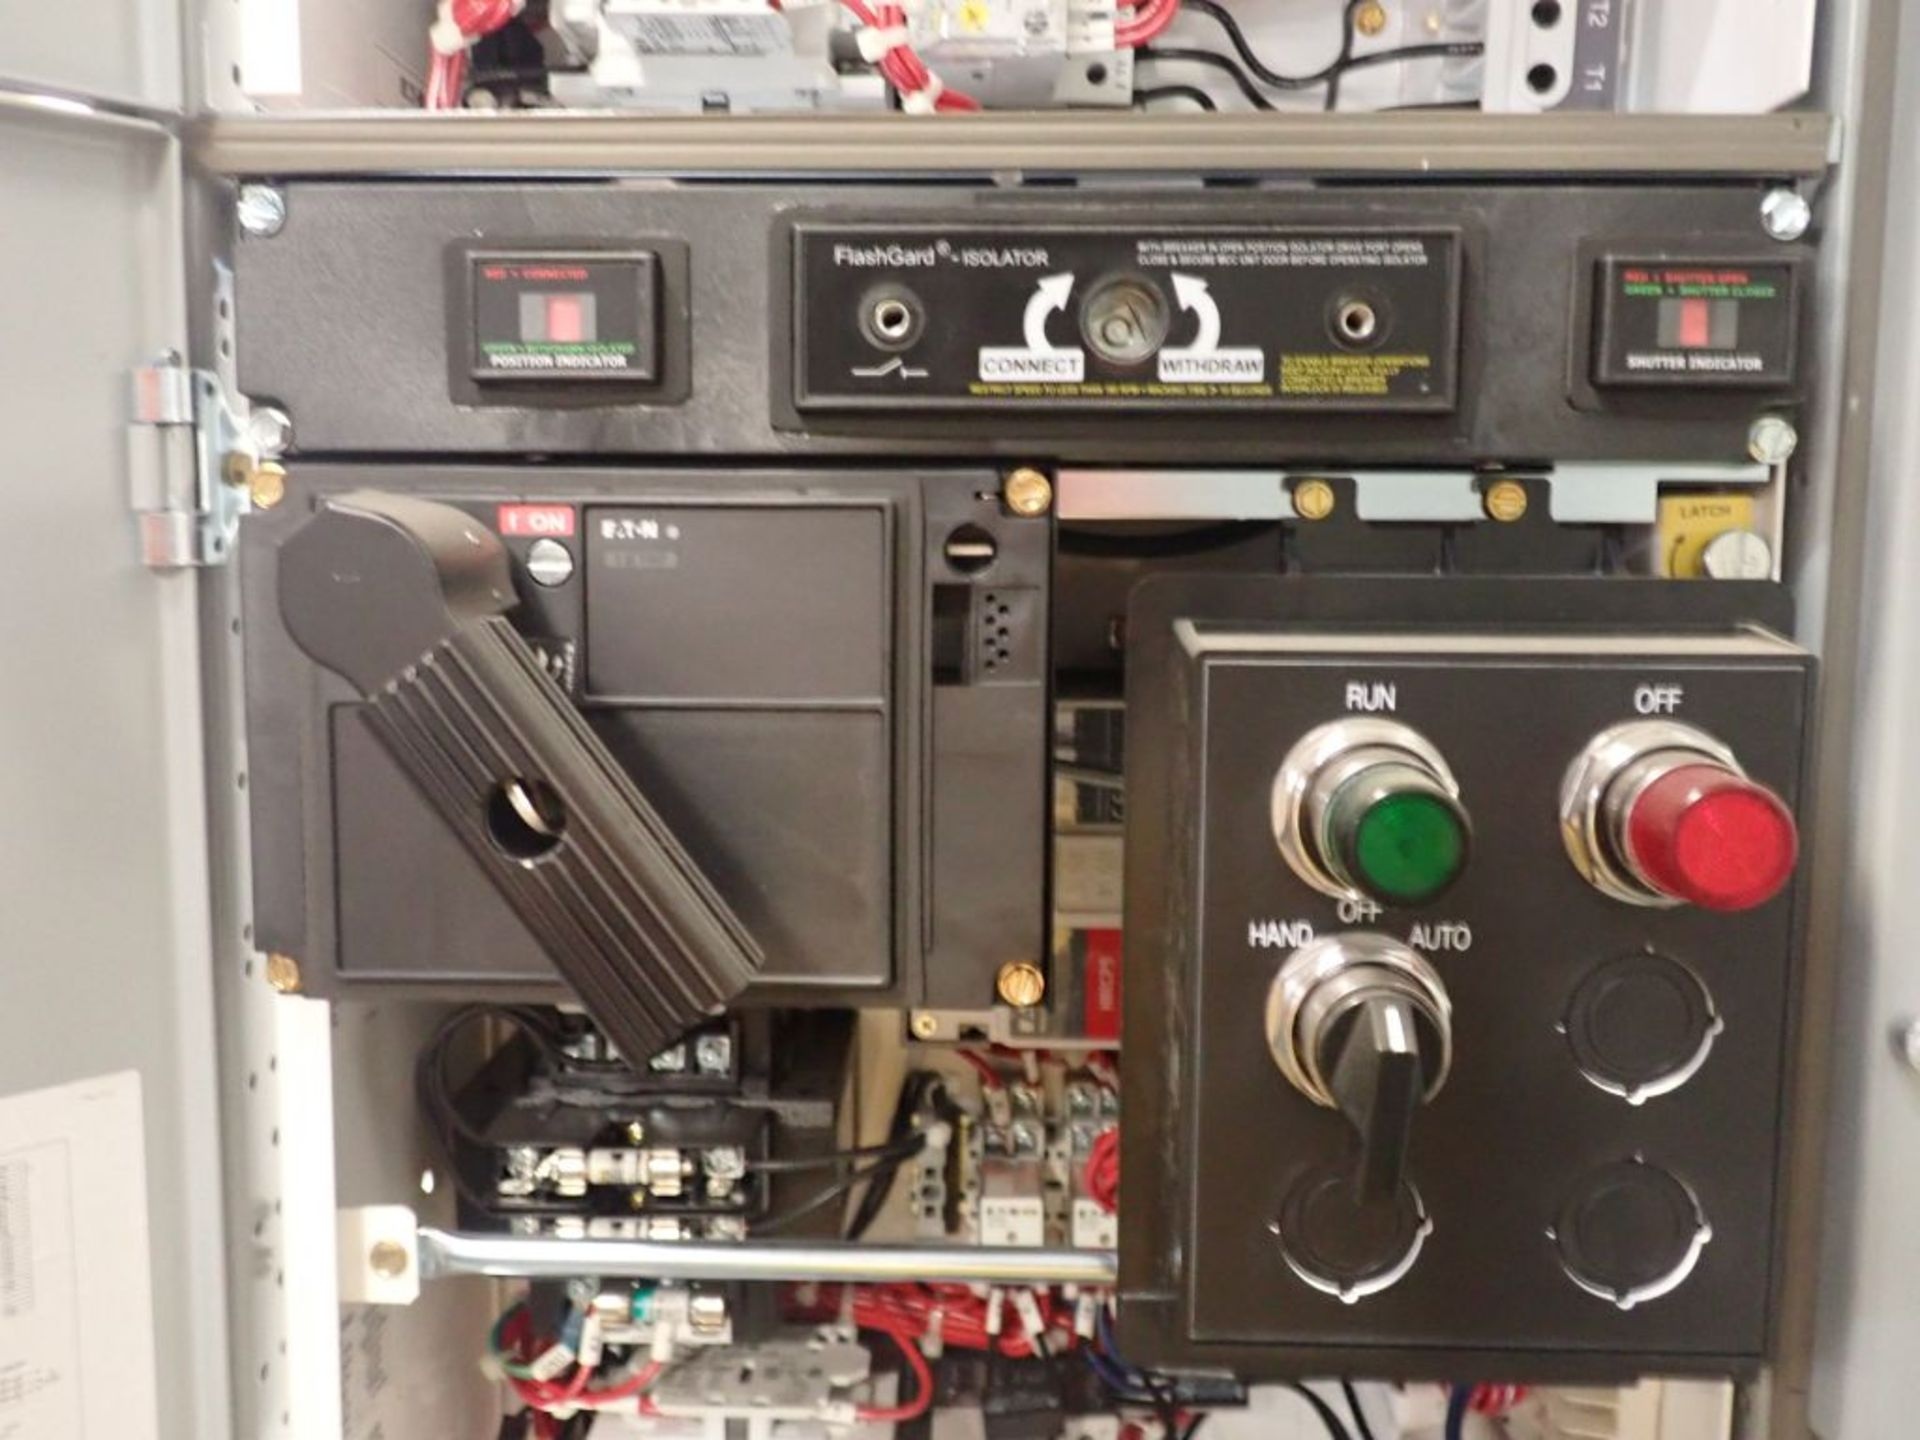 Eaton Freedom Flashgard Motor Control Center w/Components | (5) F206-15A-10HP; (4) F206-30A-10HP; ( - Image 57 of 84